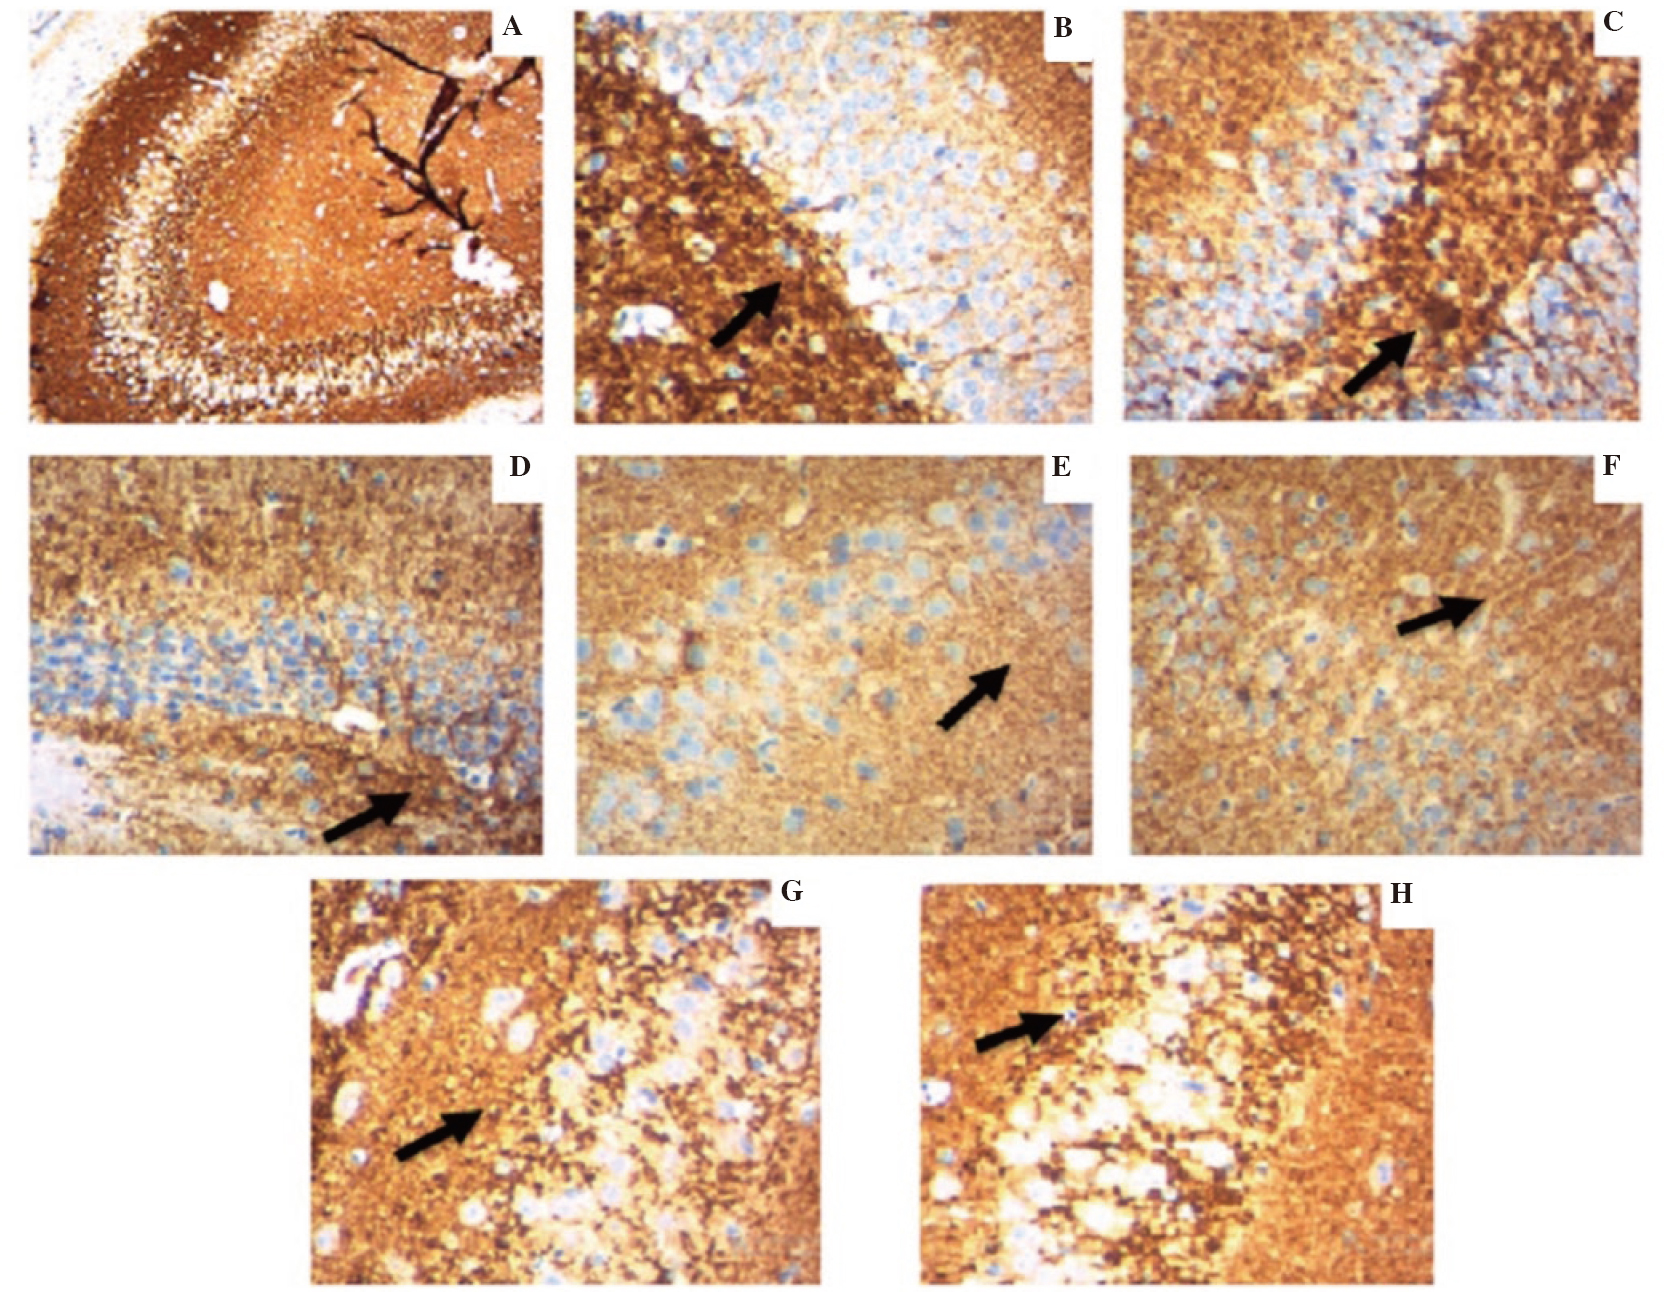 Figure 4: Synaptic plasticity was assessed by synaptophysin expression in the hippocampus of rats by immunohistochemistry. A: Sections show normal synaptophysin expression. B, E, F: Sections show reduced expression of synaptophysin which is represented by weak brown stain (shown by arrows) intensity (borderline to weak) in cells. C, D, G, H: Sections show strong staining (shown by arrows) intensity (moderate to strong) in cells. (Magnification 10×). A: normal control; B: normal control treated with lead acetate; C: normal control animals treated with lead acetate and atomoxetine; D: normal control animals treated with lead acetate and <i>Celastrus paniculatus</i> oil; E: social isolated; F: socially isolated animals treated with lead acetate; G: socially isolated animals treated with lead acetate and atomoxetine; H: socially isolated animals treated with lead acetate and <i>Celastrus paniculatus</i> oil.